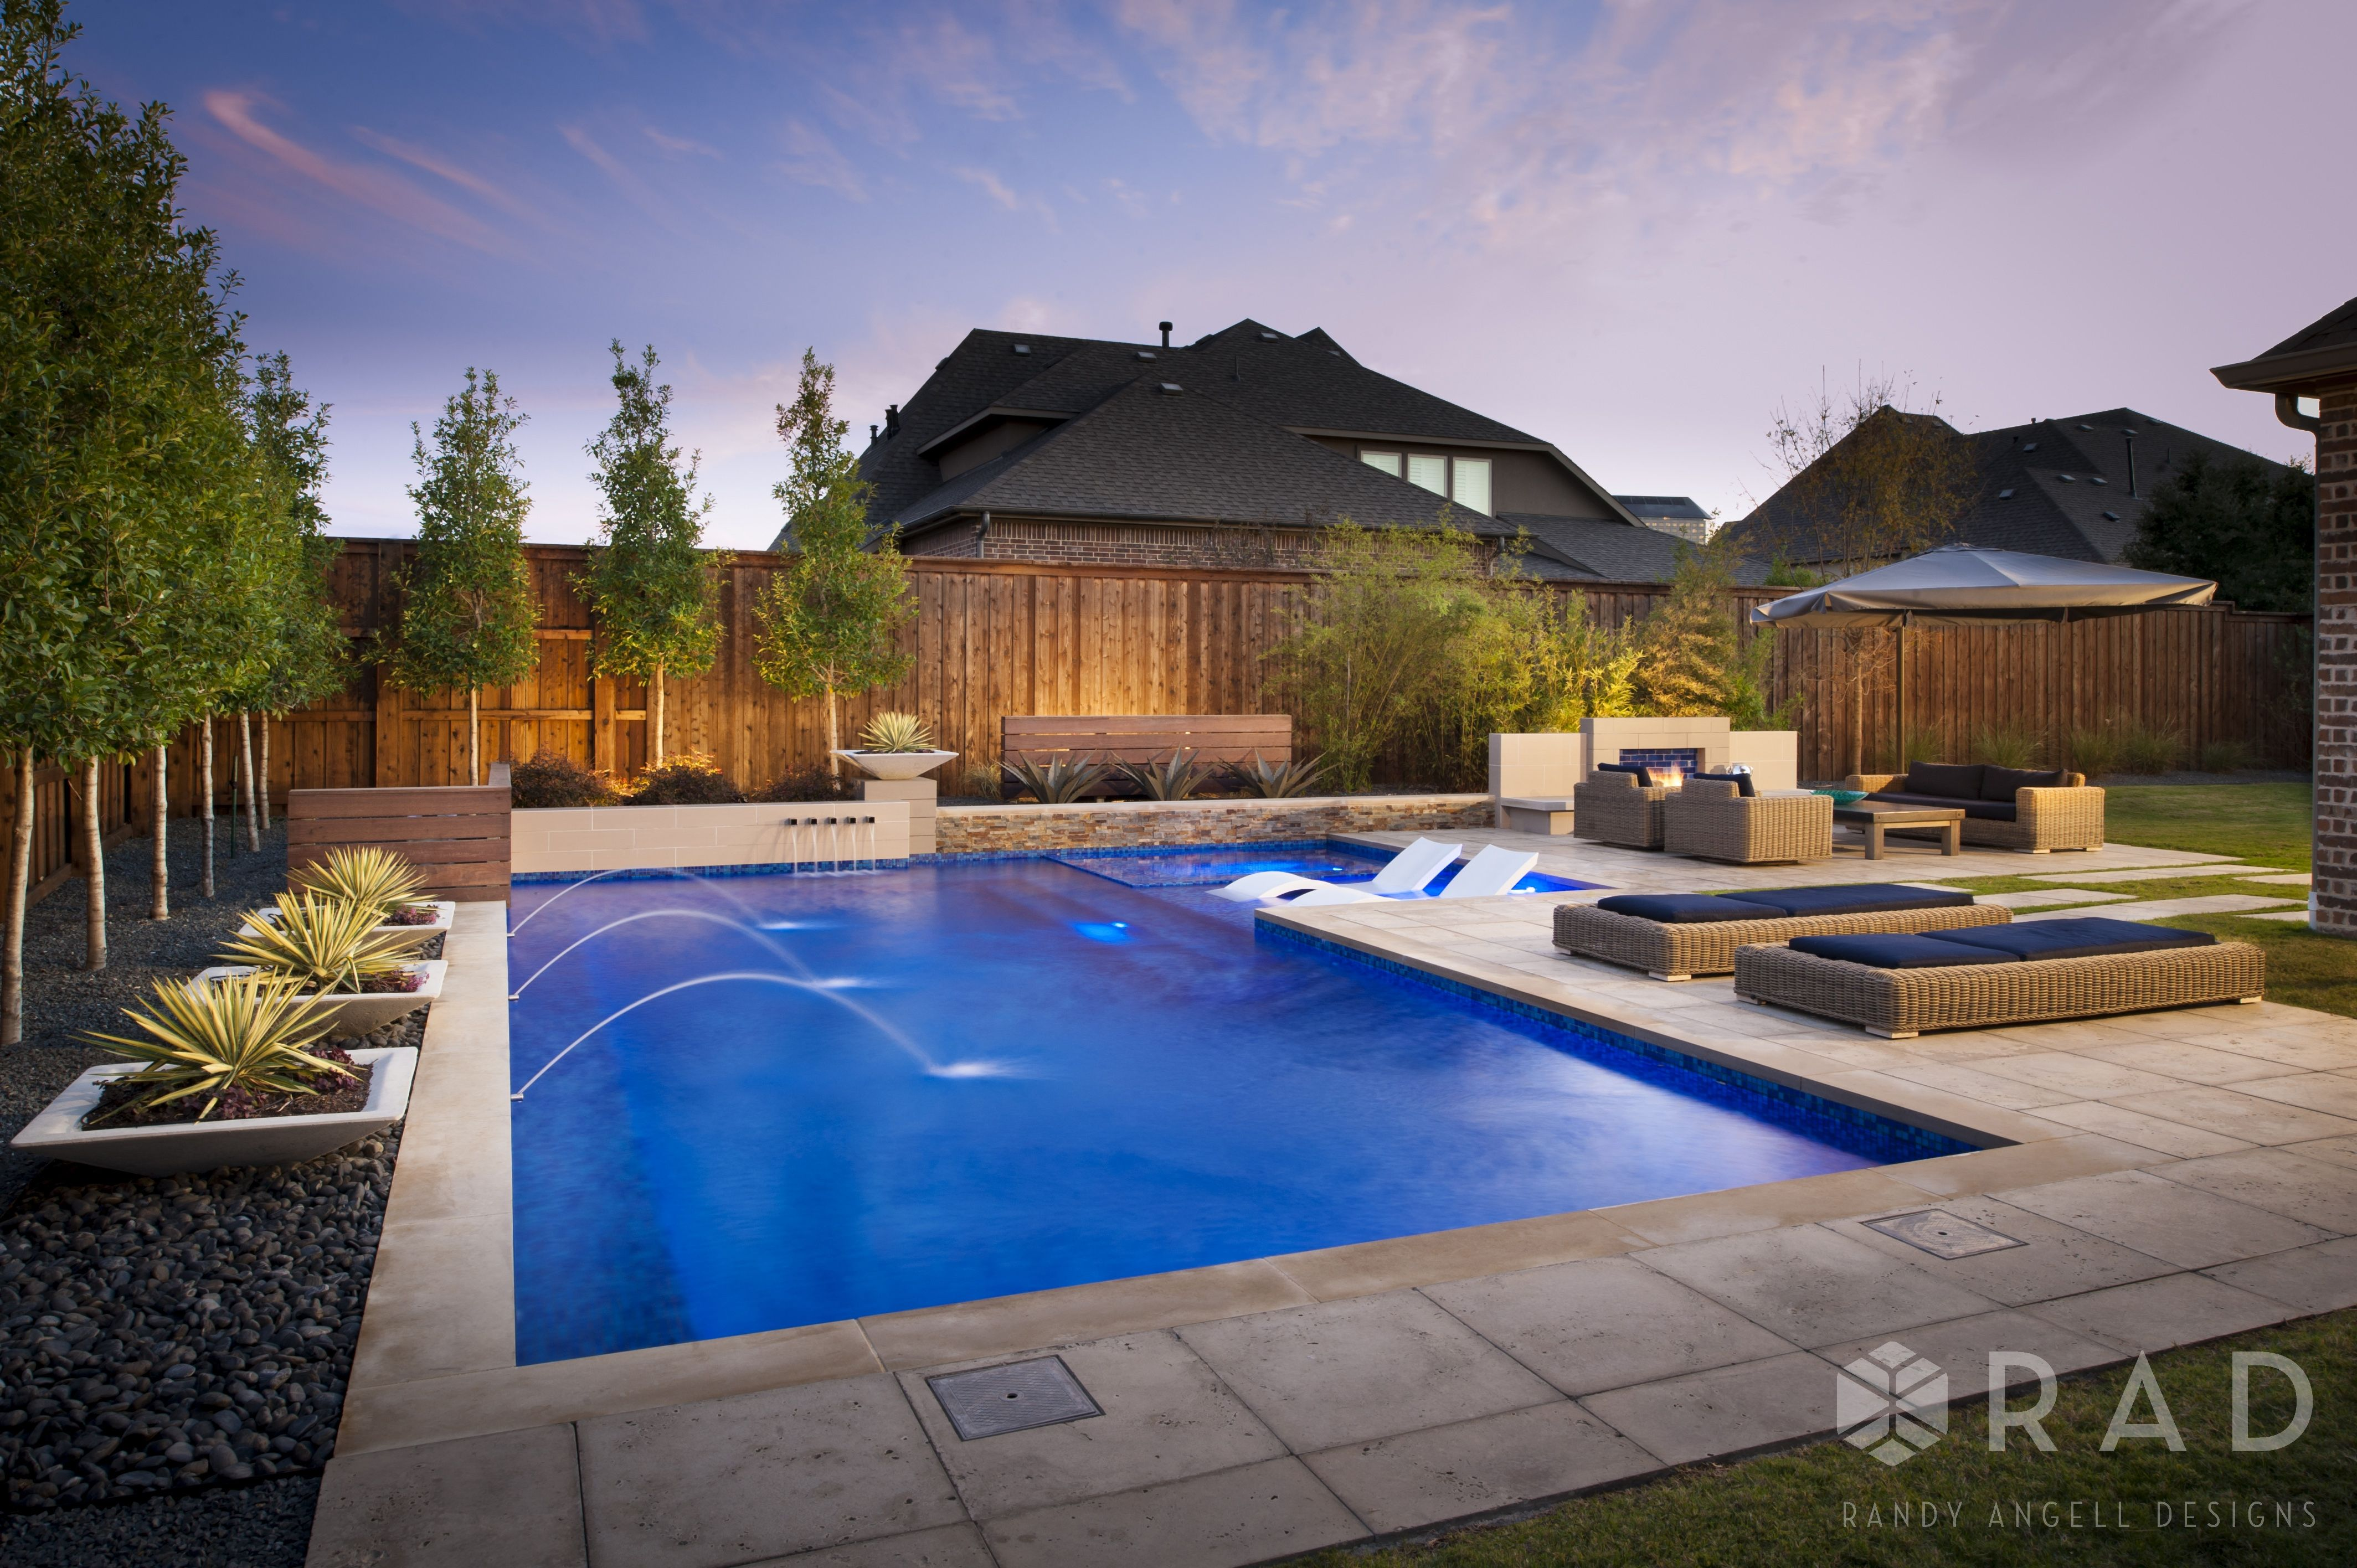 Modern L Shaped Swimming Pool And Outdoor Entertaining Area Designed By Randy Angell Designs Raised Feature Modern Landscaping Modern Pools Pool Environment